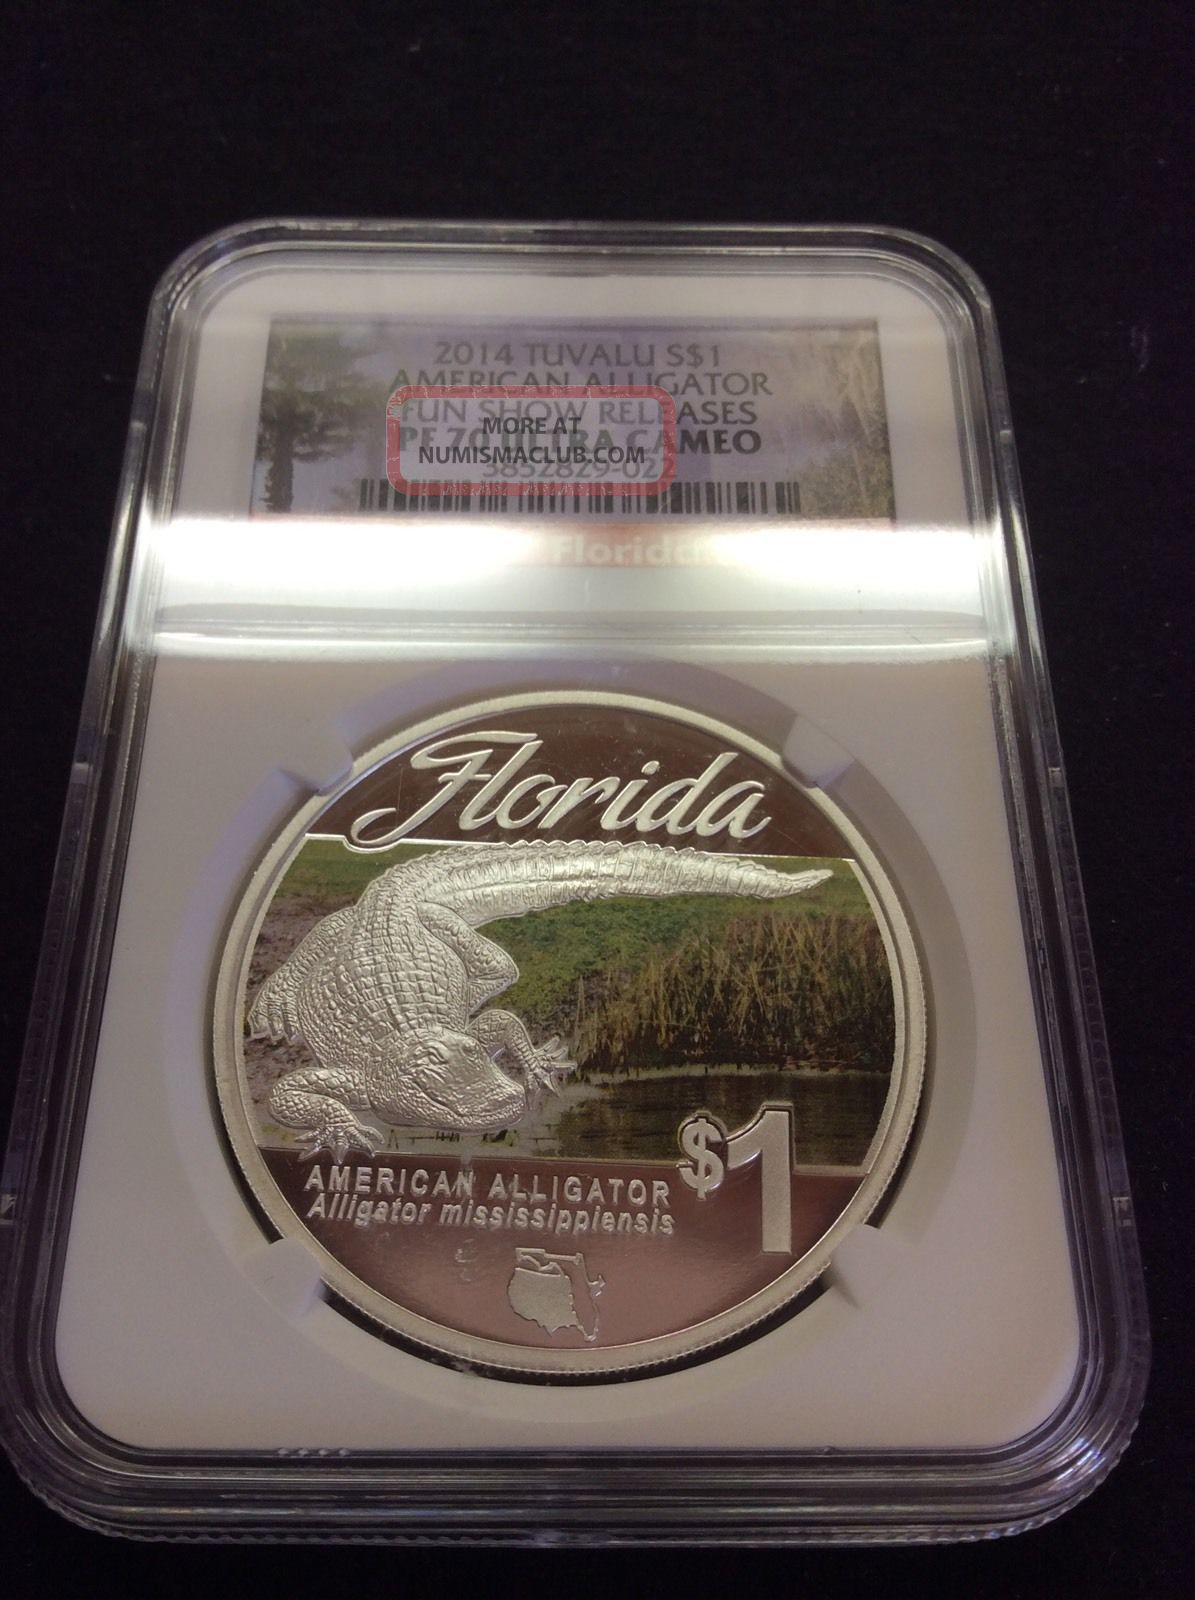 2014 Tuvalu Silver Dollar Proof 1 American Alligator